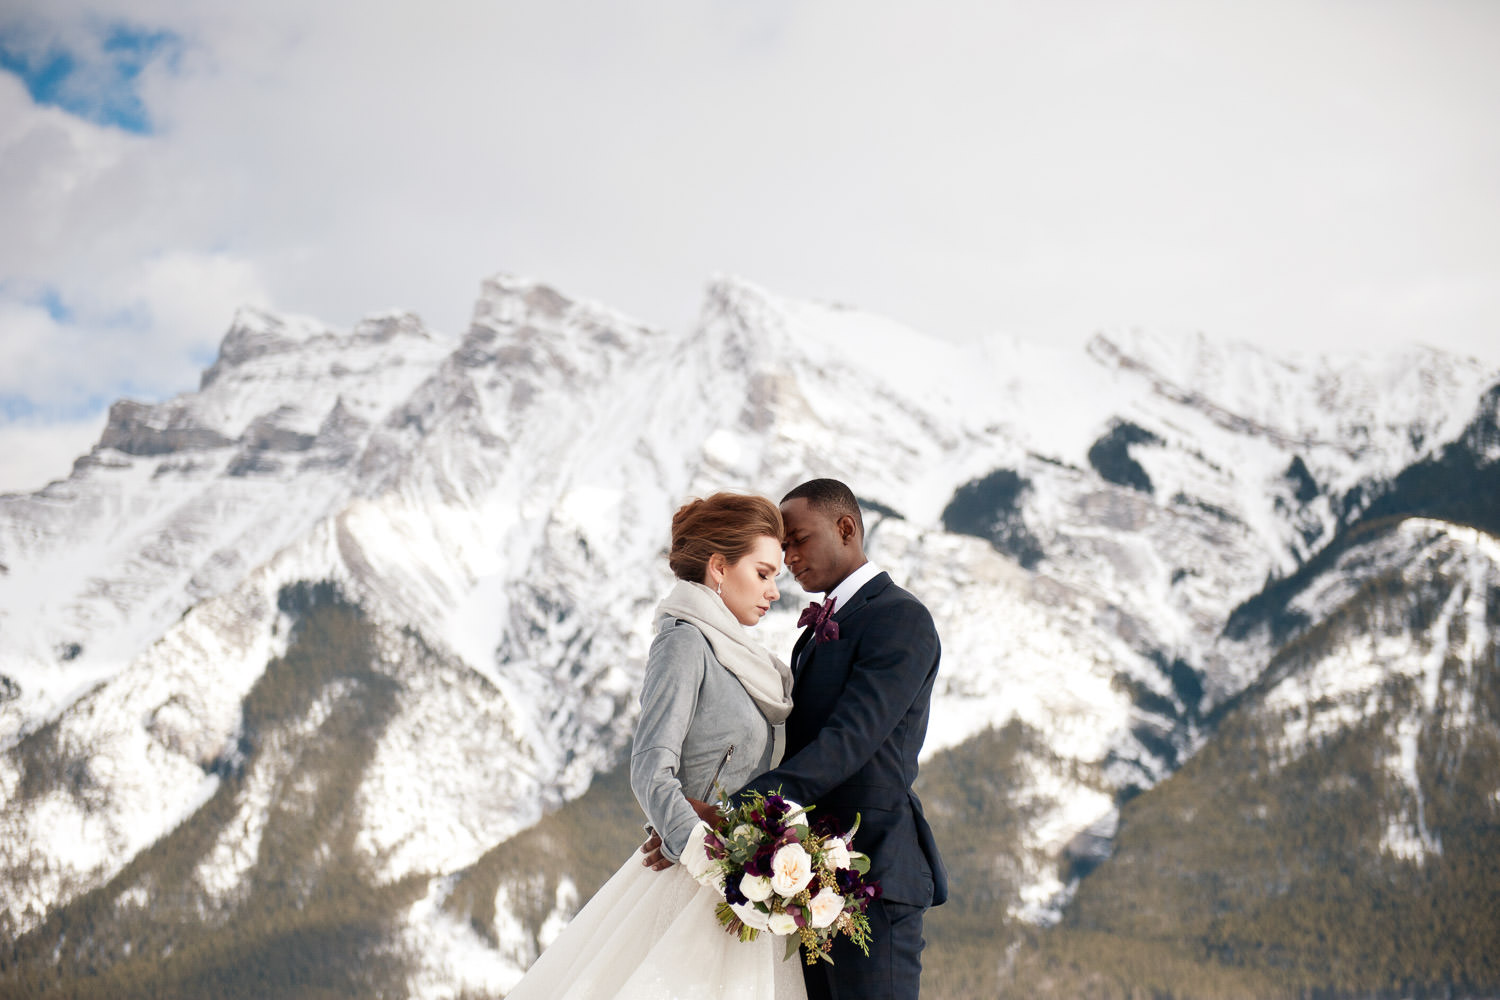 bride and groom in the mountains at Lake Minnnewanka captured by Tara Whittaker Photography